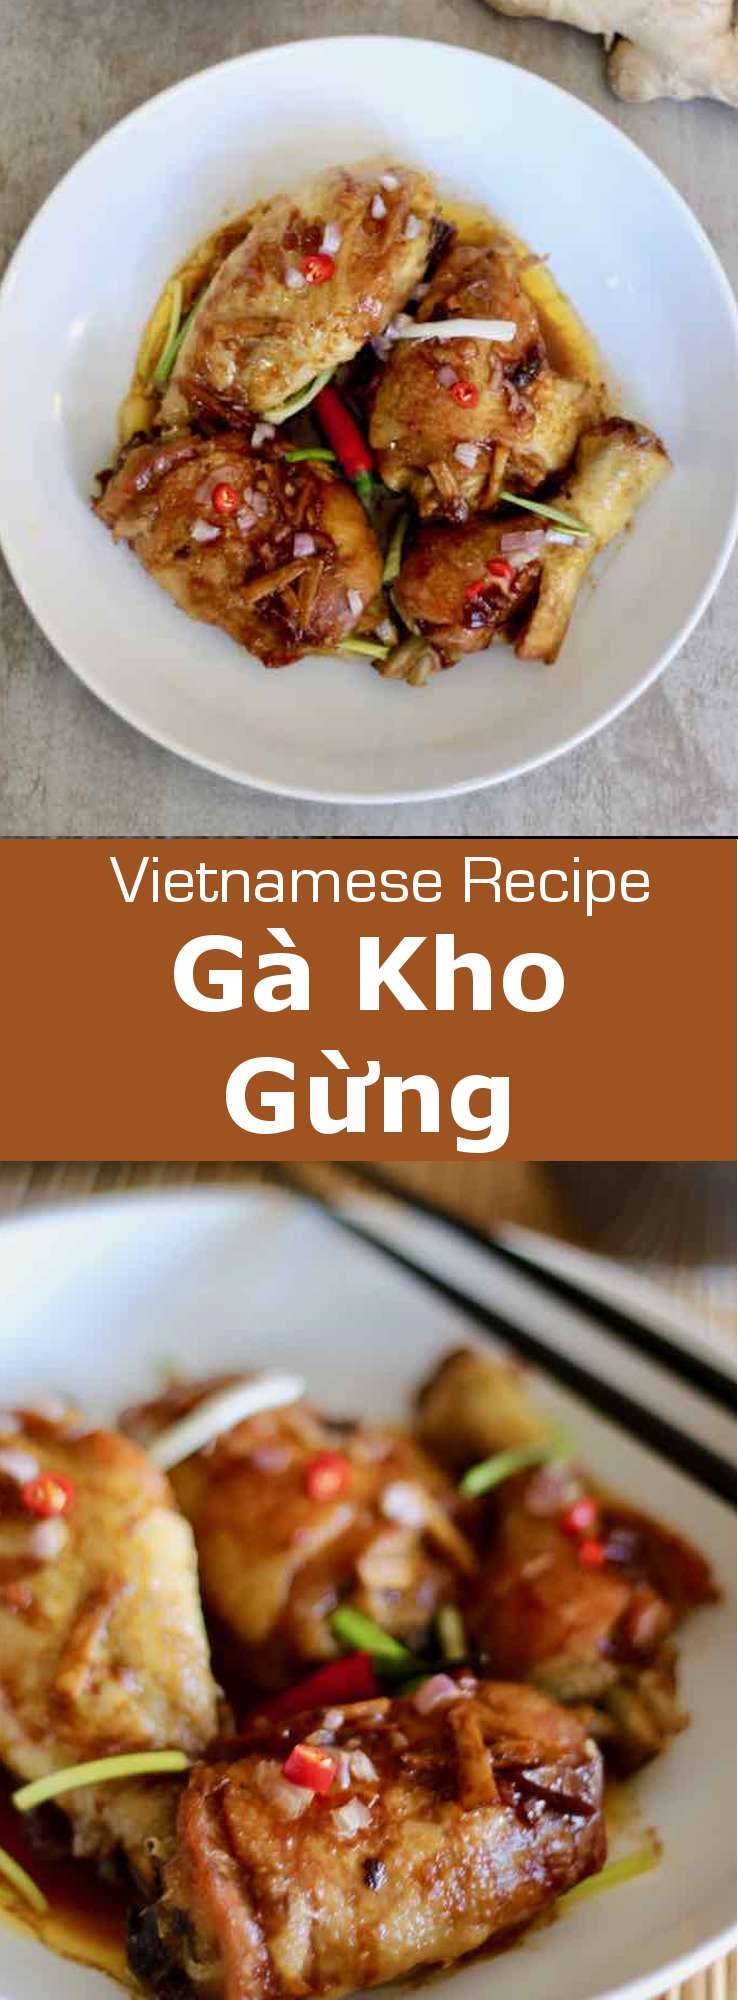 Gà kho gừng is the Vietnamese version of the traditional Asian ginger chicken. This version is flavored with nuoc mâm (fish sauce). #Vietnam #VietnameseCuisine #VietnameseFood #VietnameseRecipe #AsianCuisine #AsianRecipe #AsianFood #WorldCuisine #196flavors